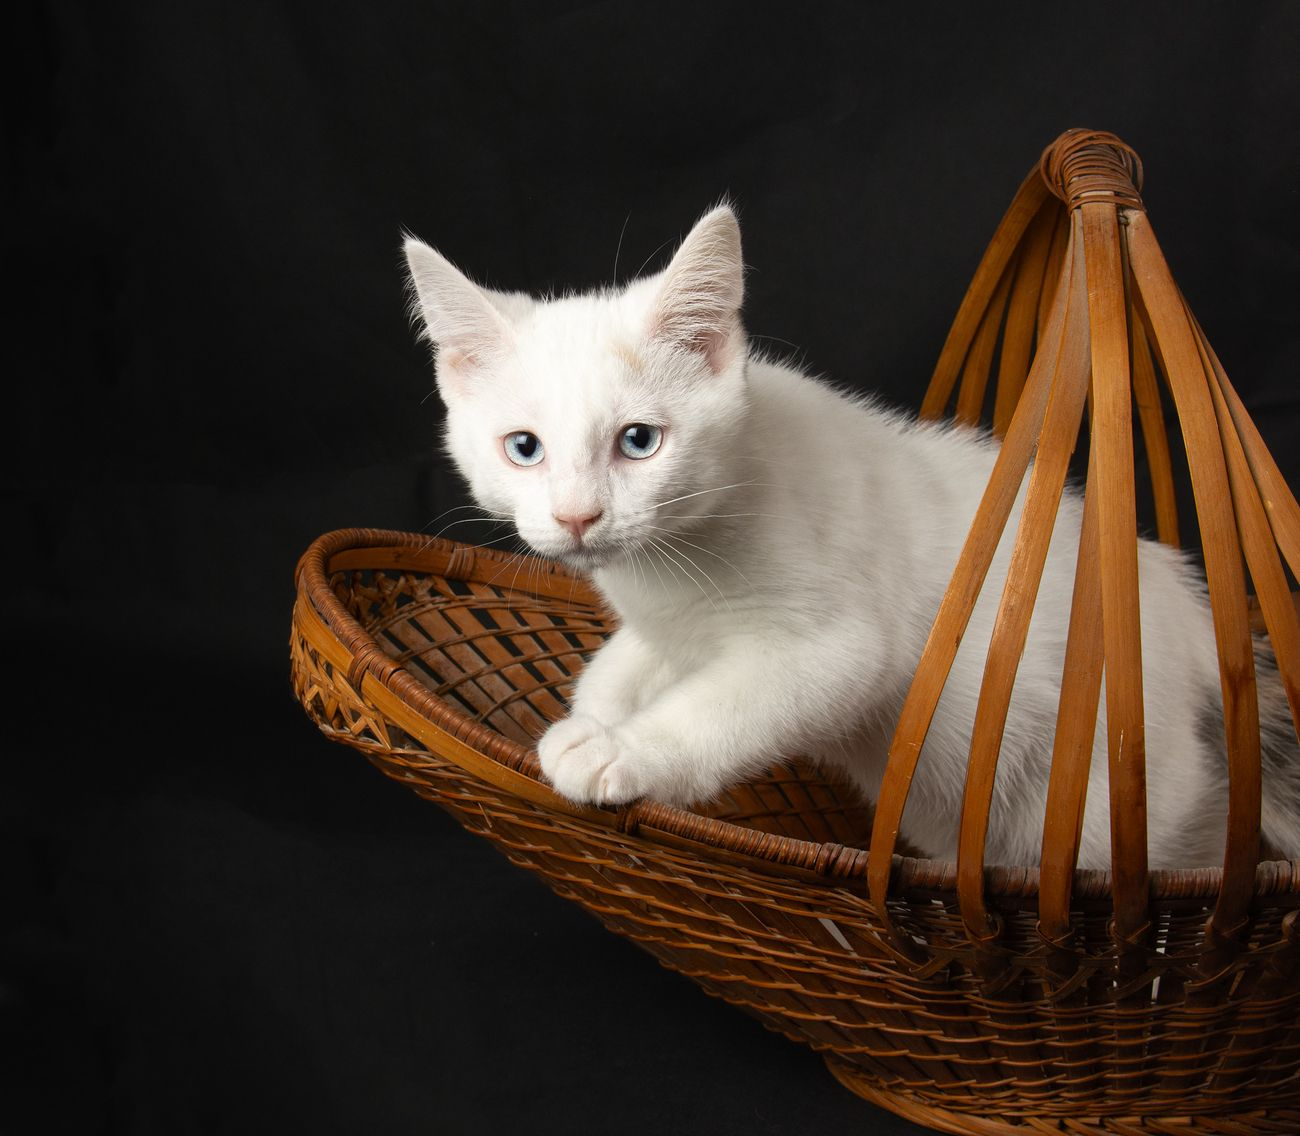 White kitten with blue eyes in a basket.